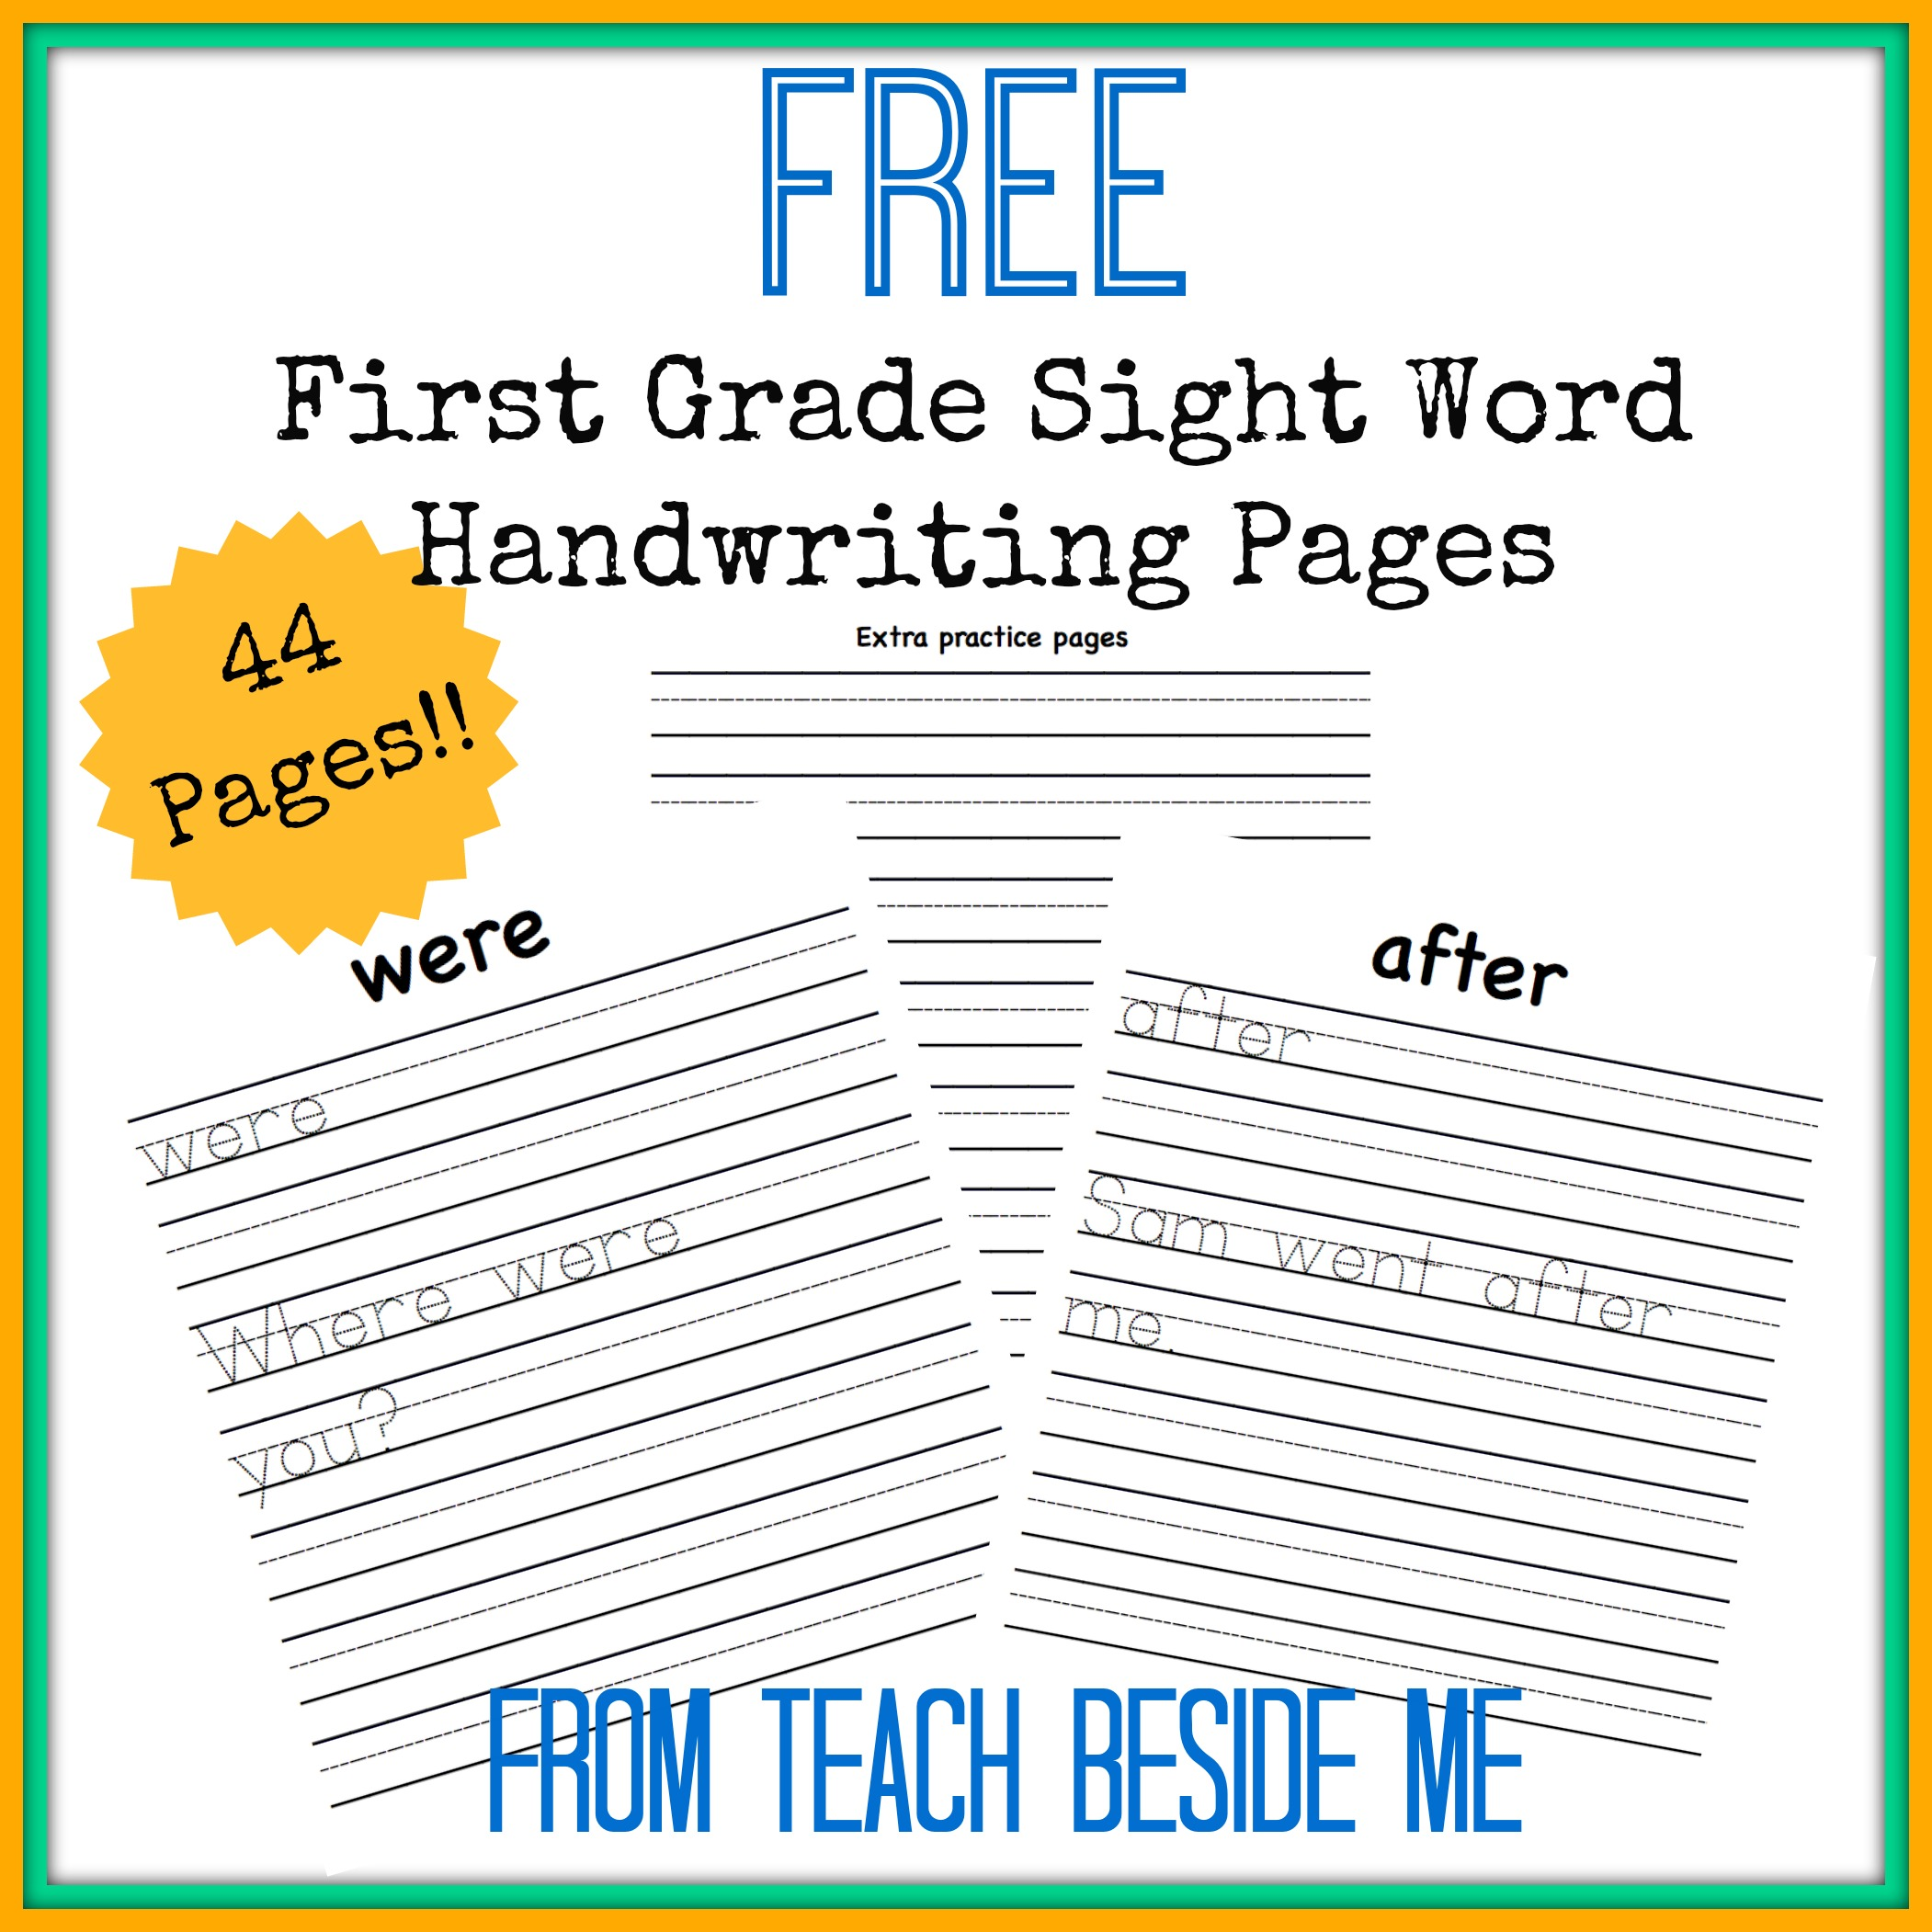 worksheet First Grade Sight Word Worksheets free first grade sight word handwriting pages homeschool deals